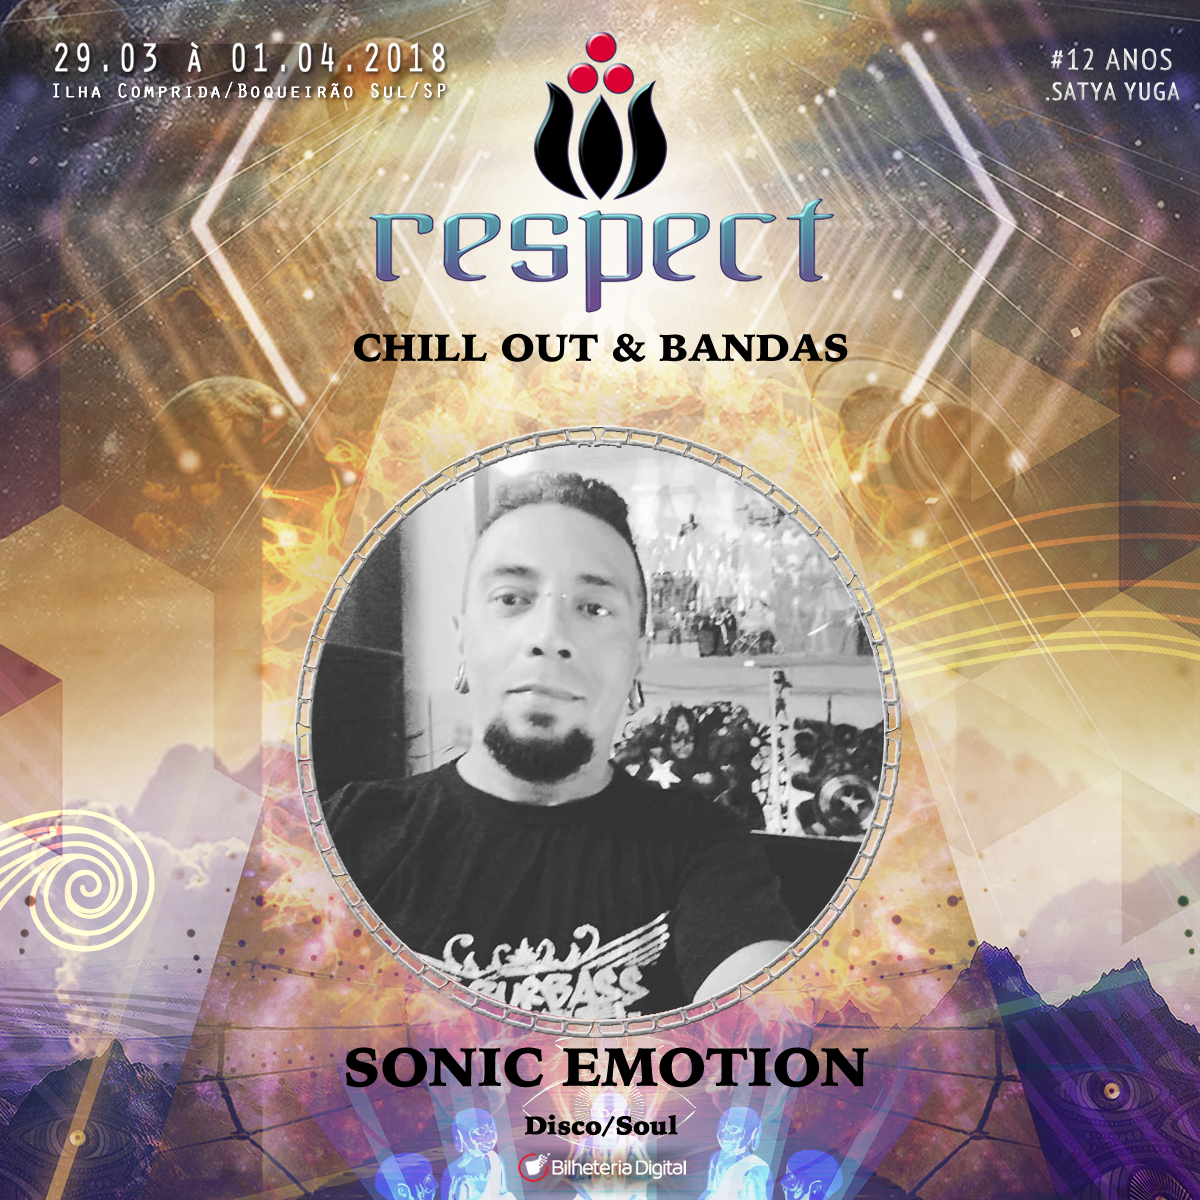 Sonic Emotion @ Artista Confirmado Respect Festival 2018